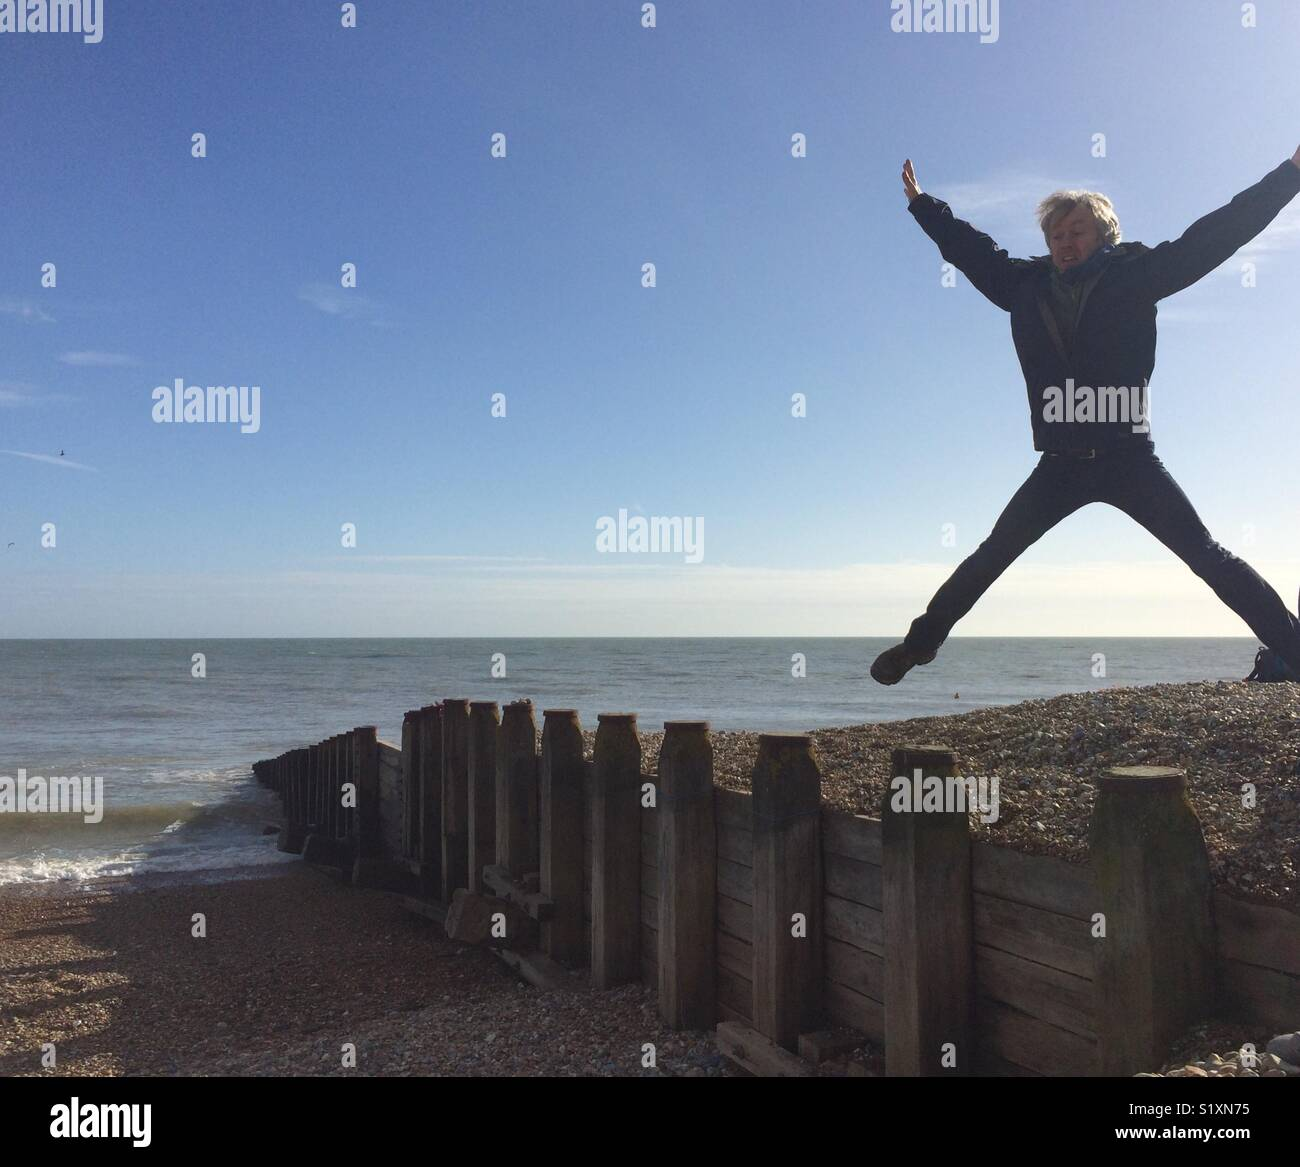 Man jumping on beach - Stock Image